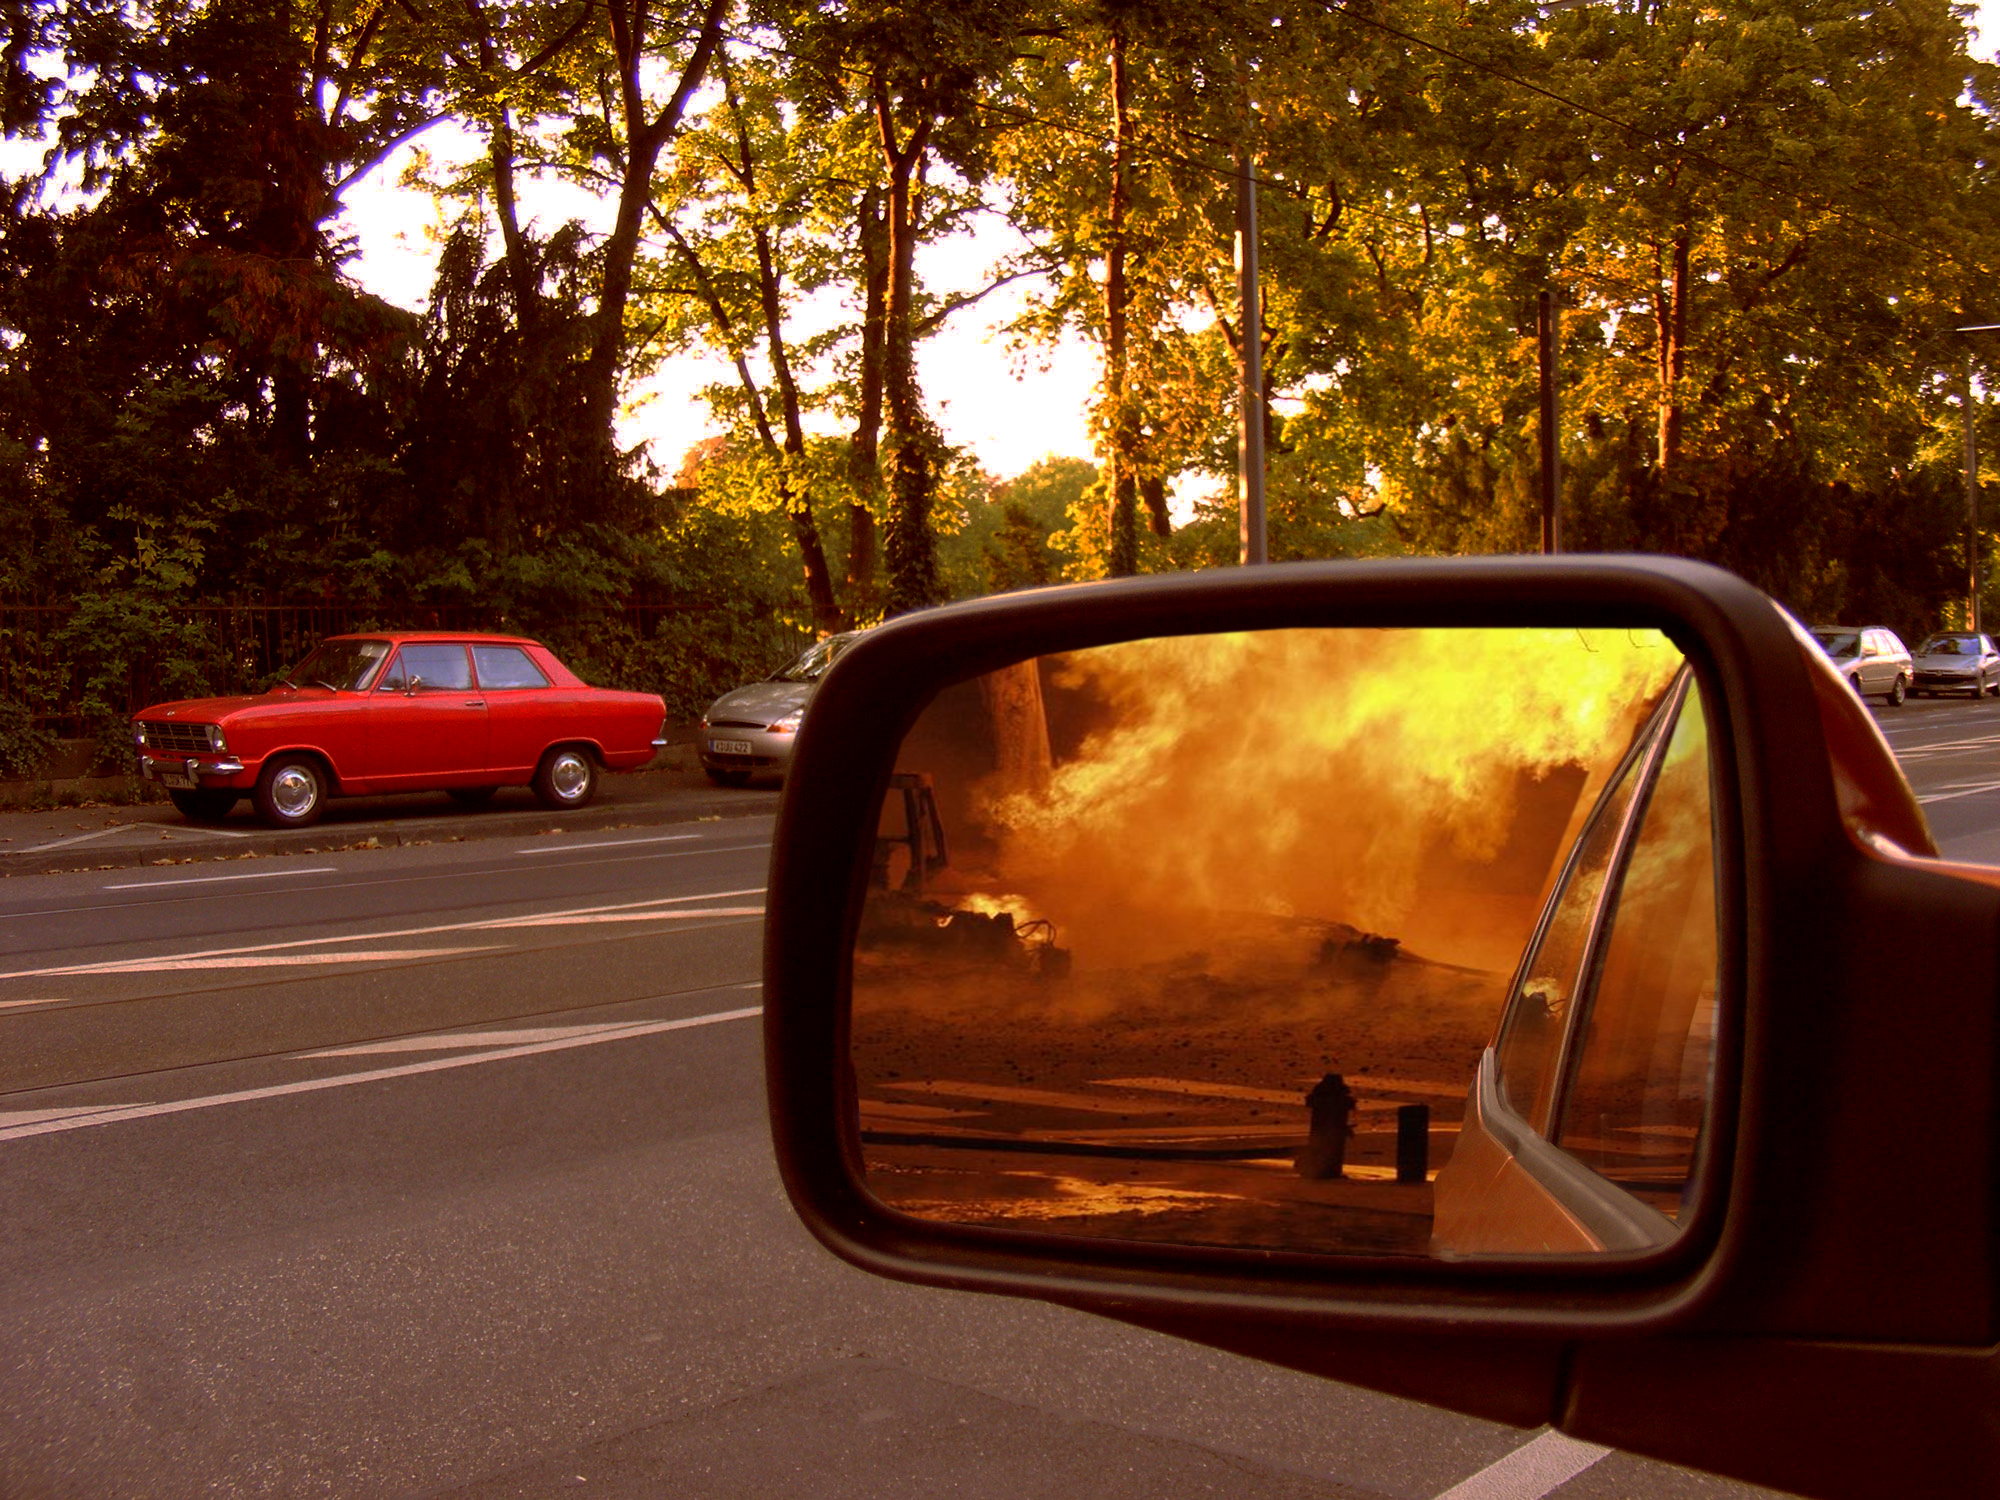 Photoshop Submission For Rear View Mirror Contest Design 8921162